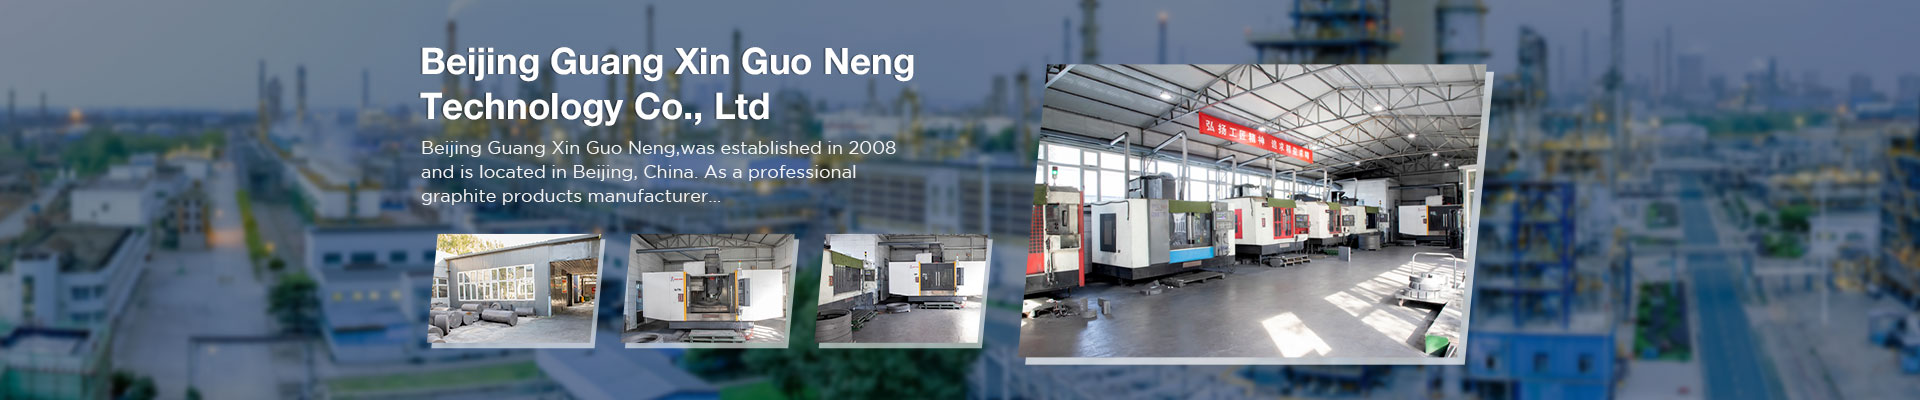 Beijing Guang Xin Guo Neng Technology Co., Ltd.